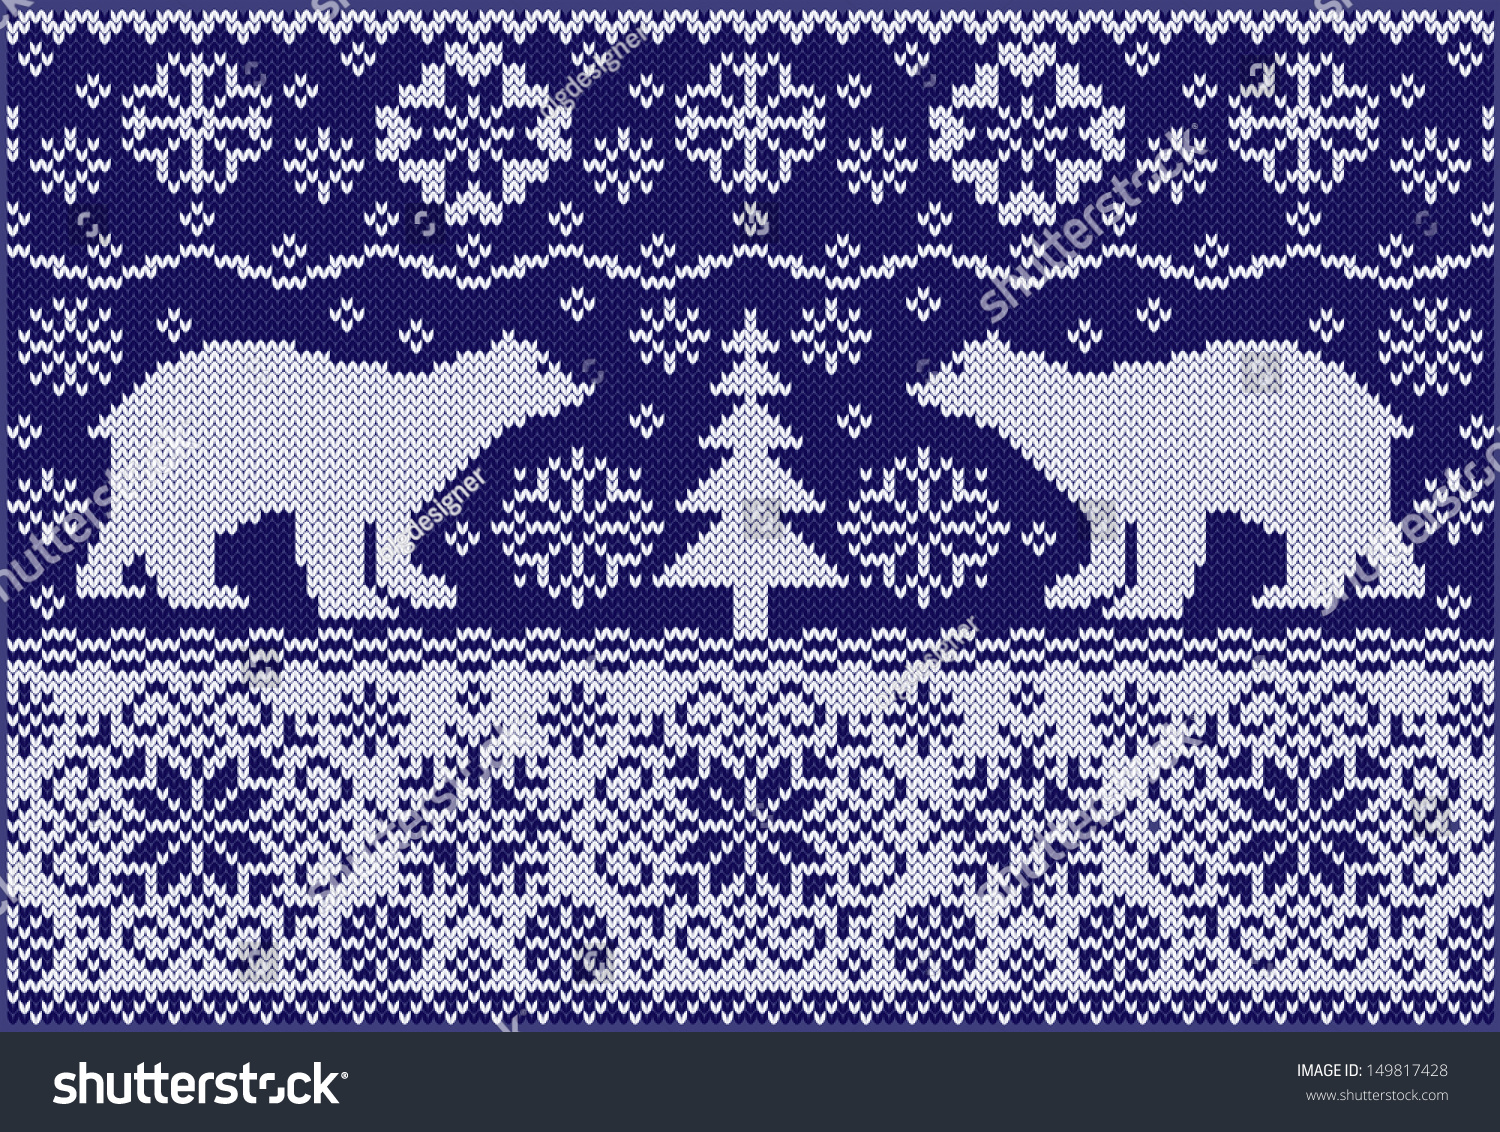 Knitted Ornament With Bears. Fashionable Northern Pattern. Knitted Style. Cre...